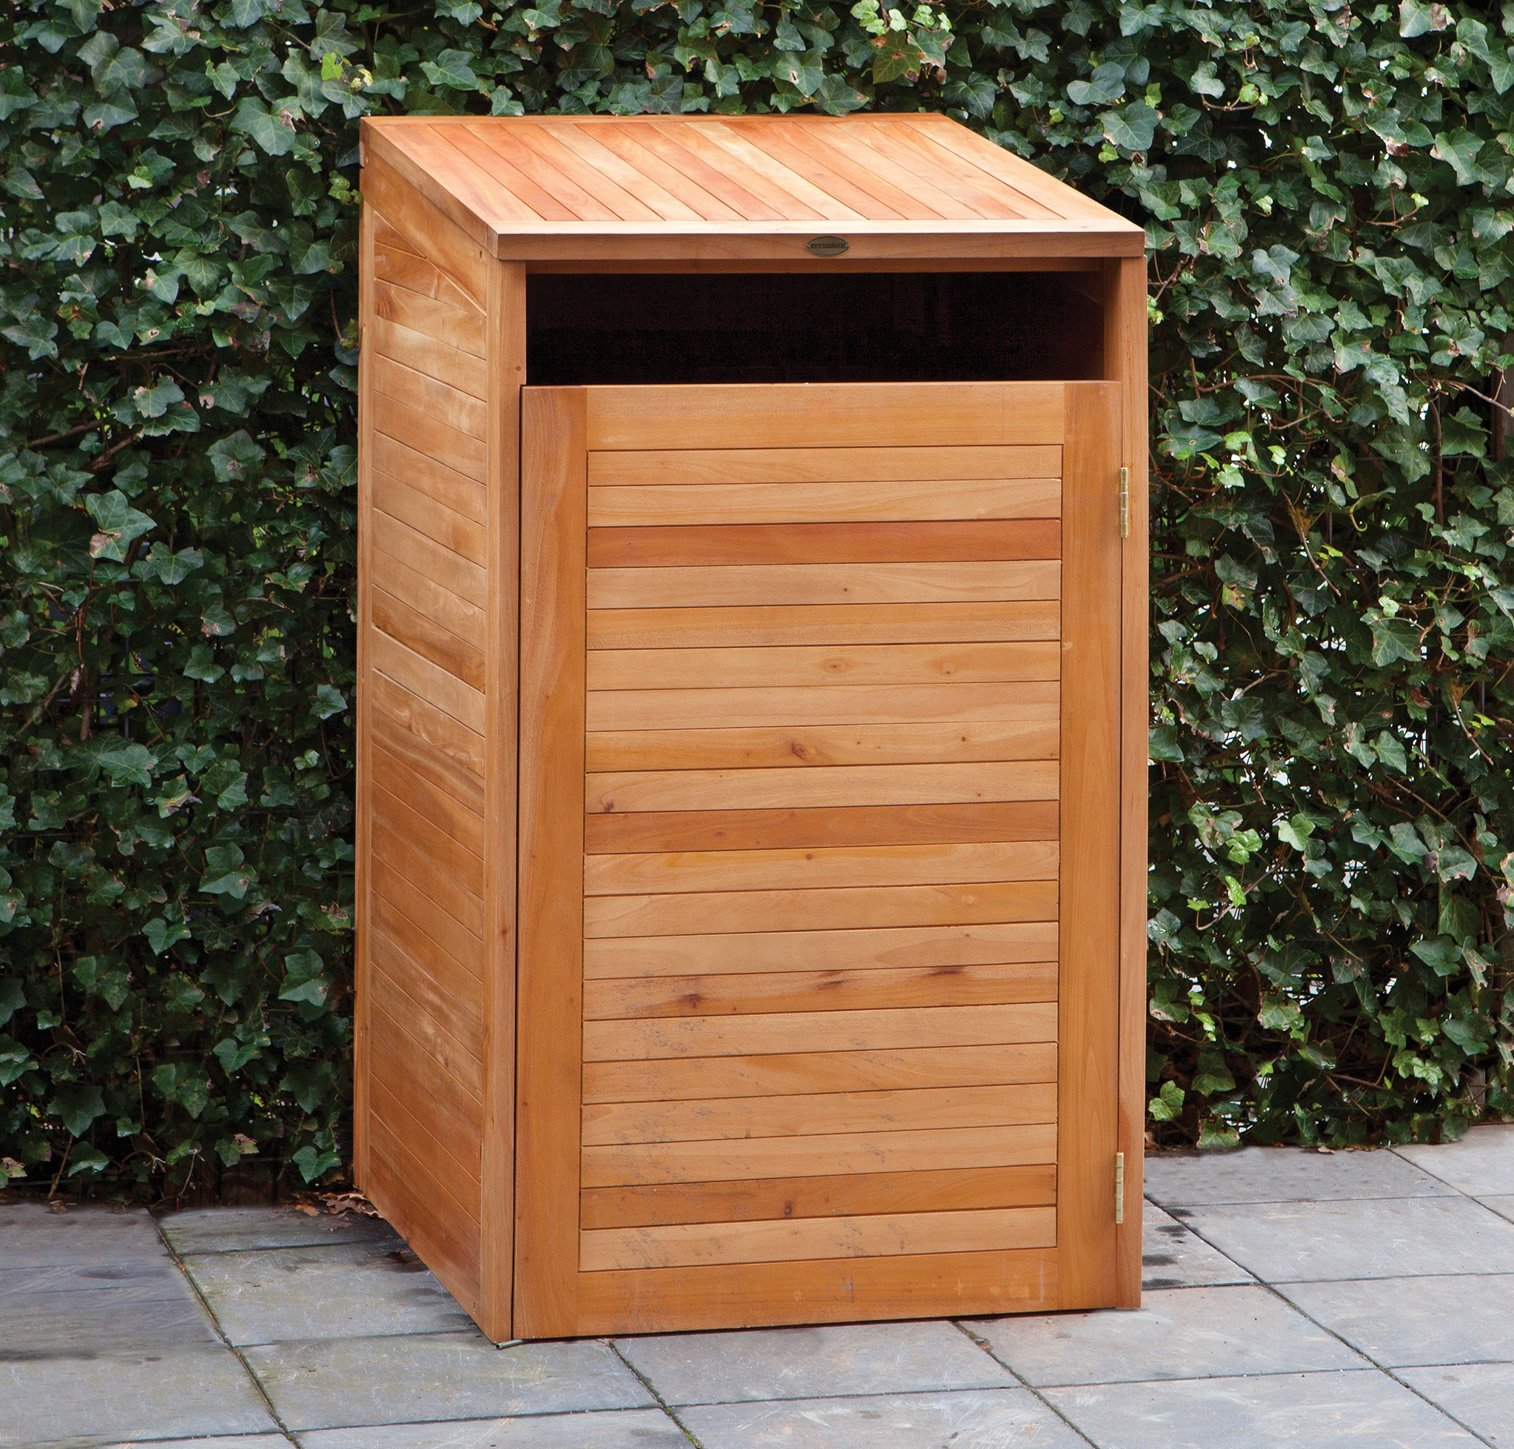 Single Hardwood wheelie bin store ... & Hardwood Single Wheelie Bin Store